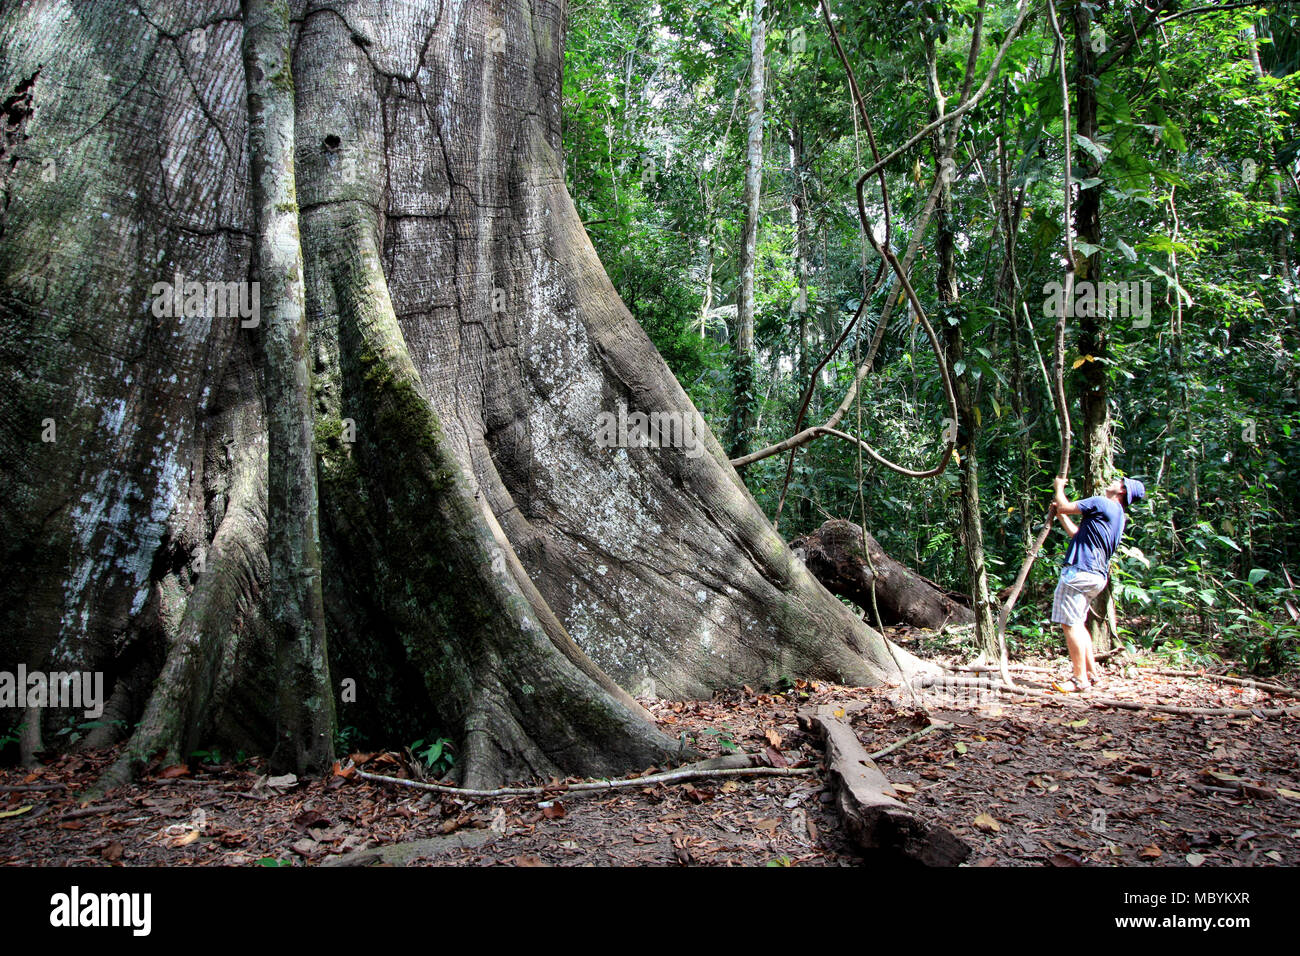 An Tourist exploring a huge Kapok Tree in the Amazon Rainforest, inside Tambopata National Reserve in the Amazon Basin, Peru - Stock Image